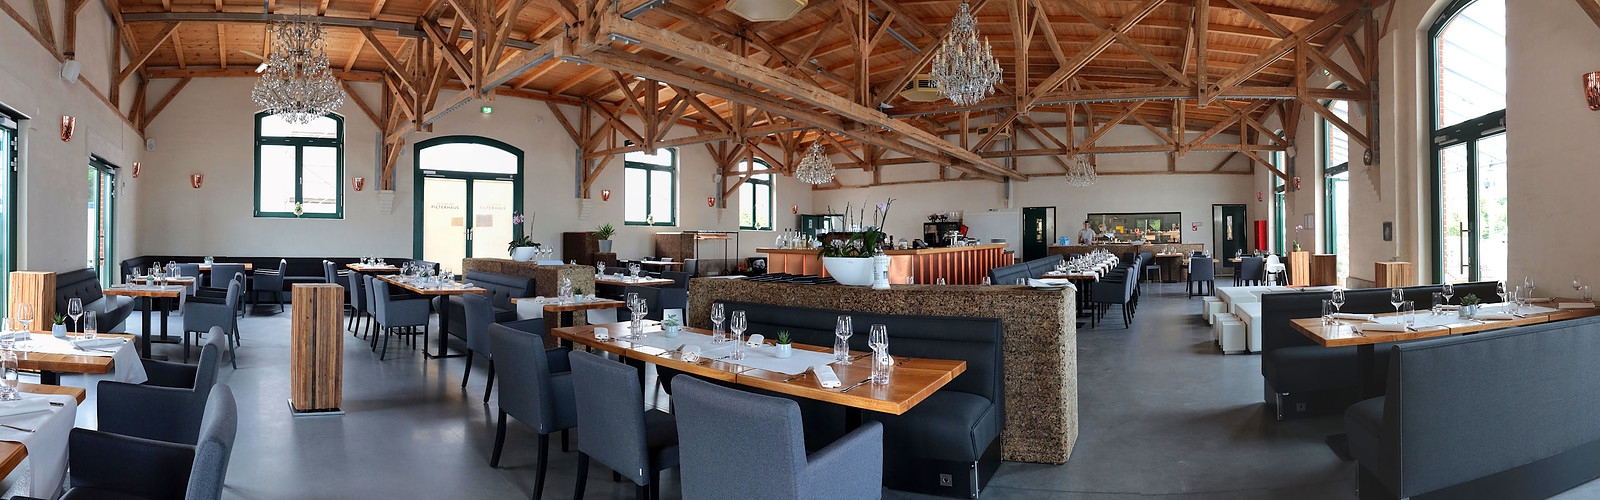 Restaurant Filterhaus, photo: Karsten Wiesner